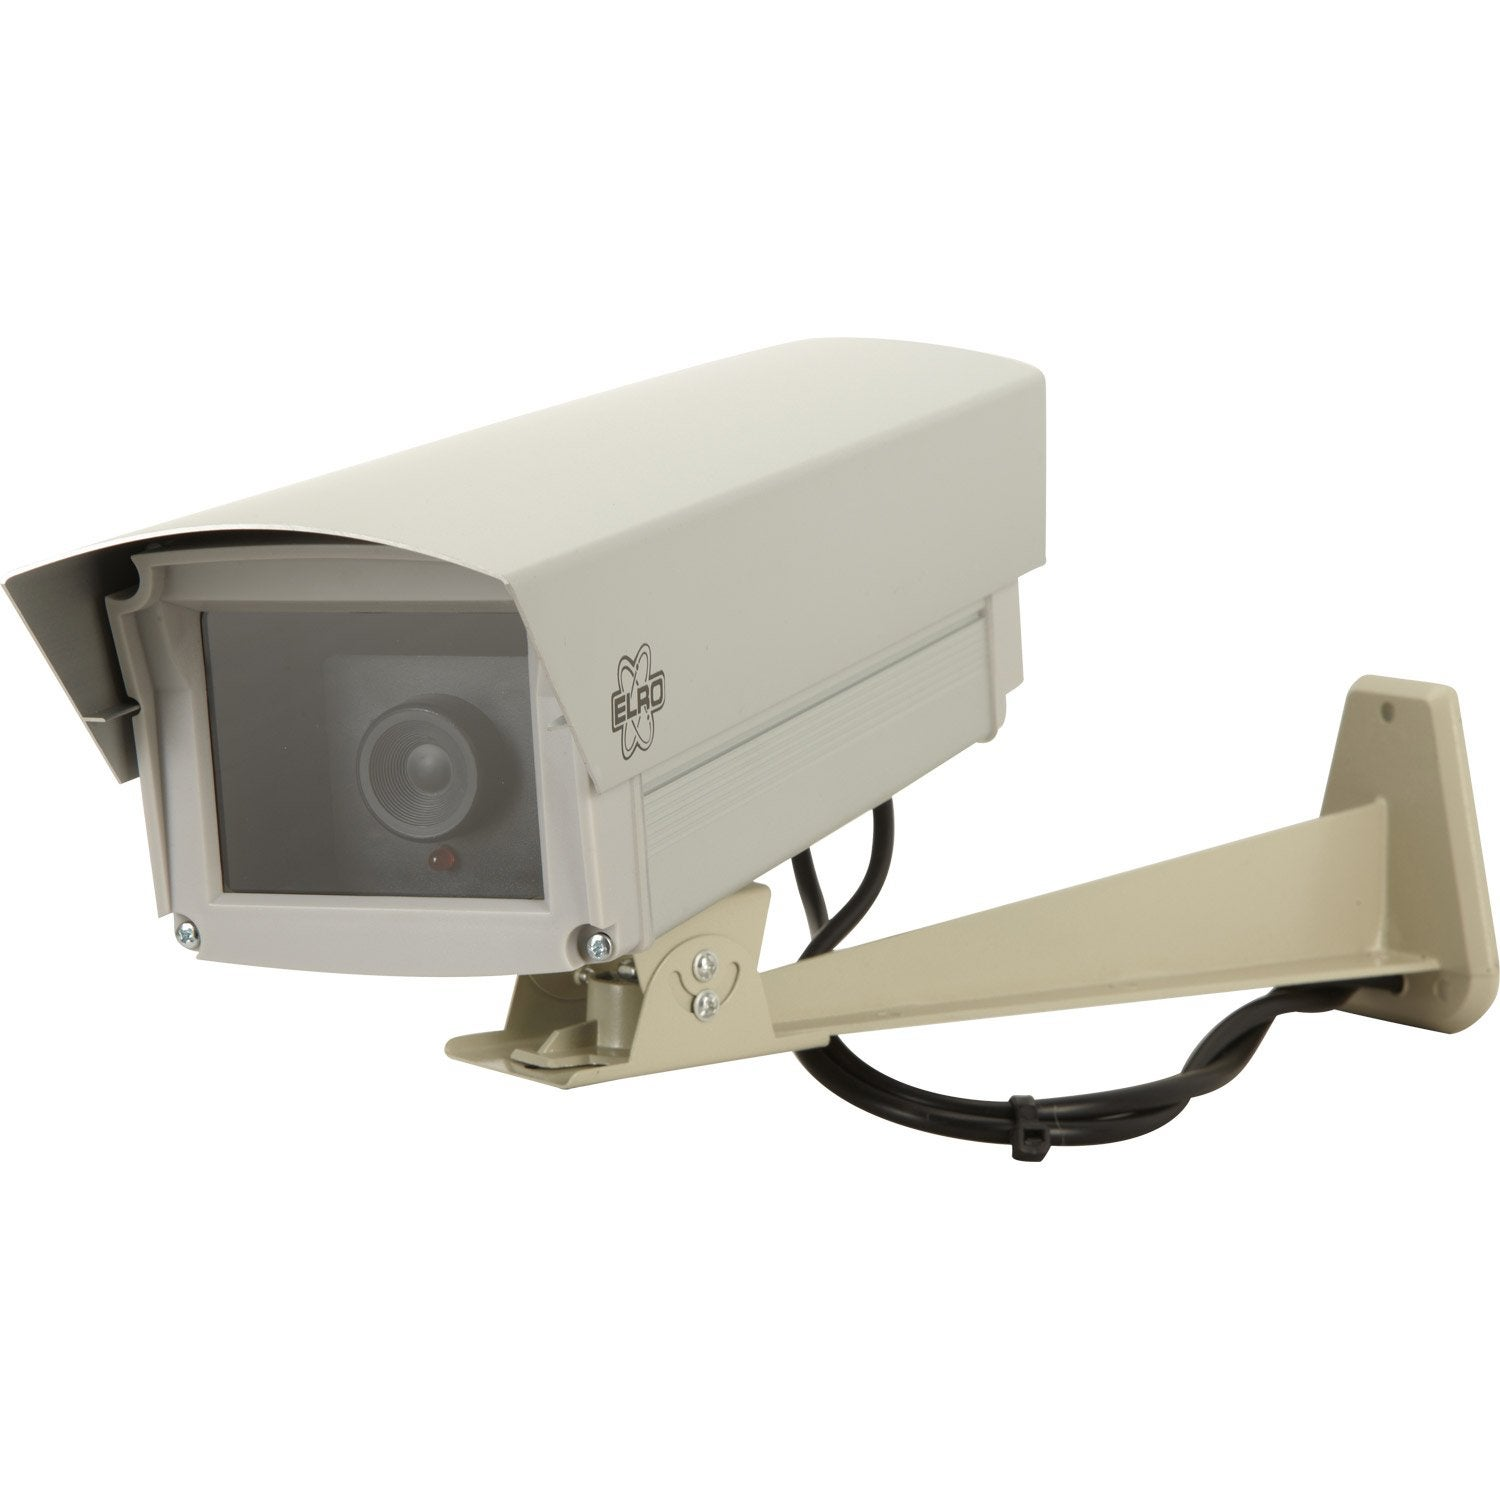 Cam ra de surveillance factice elro cs66d leroy merlin - Camera factice leroy merlin ...